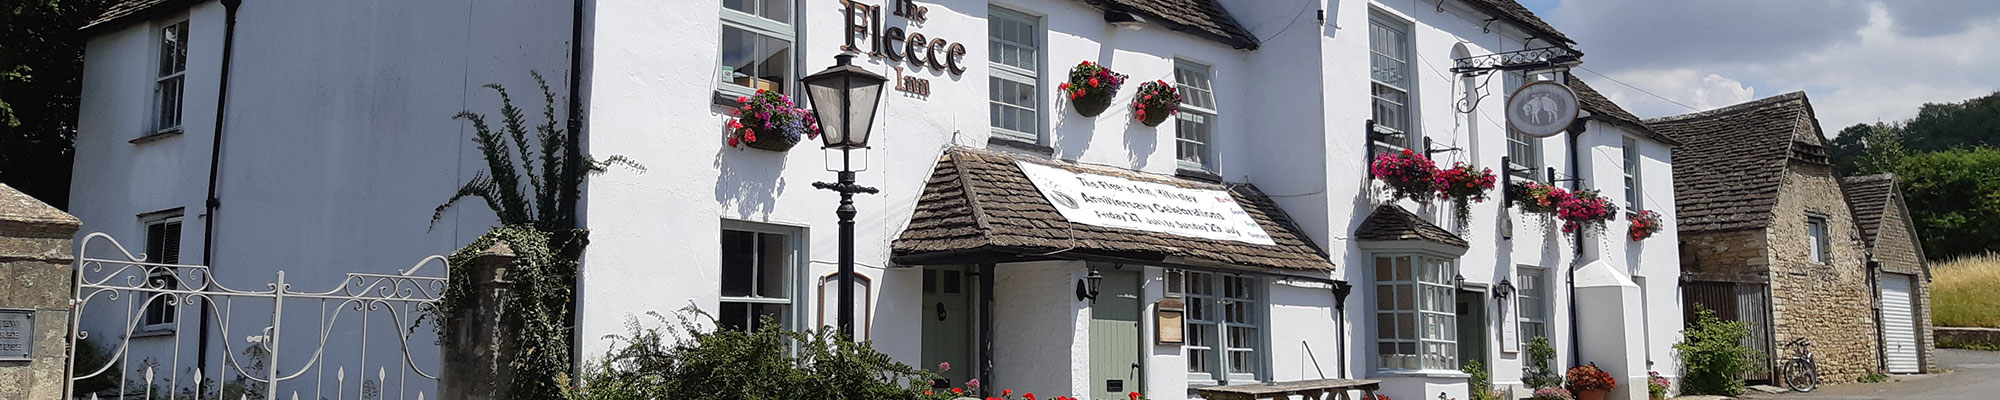 The Fleece Inn Hillesley - Great beer, friendly service